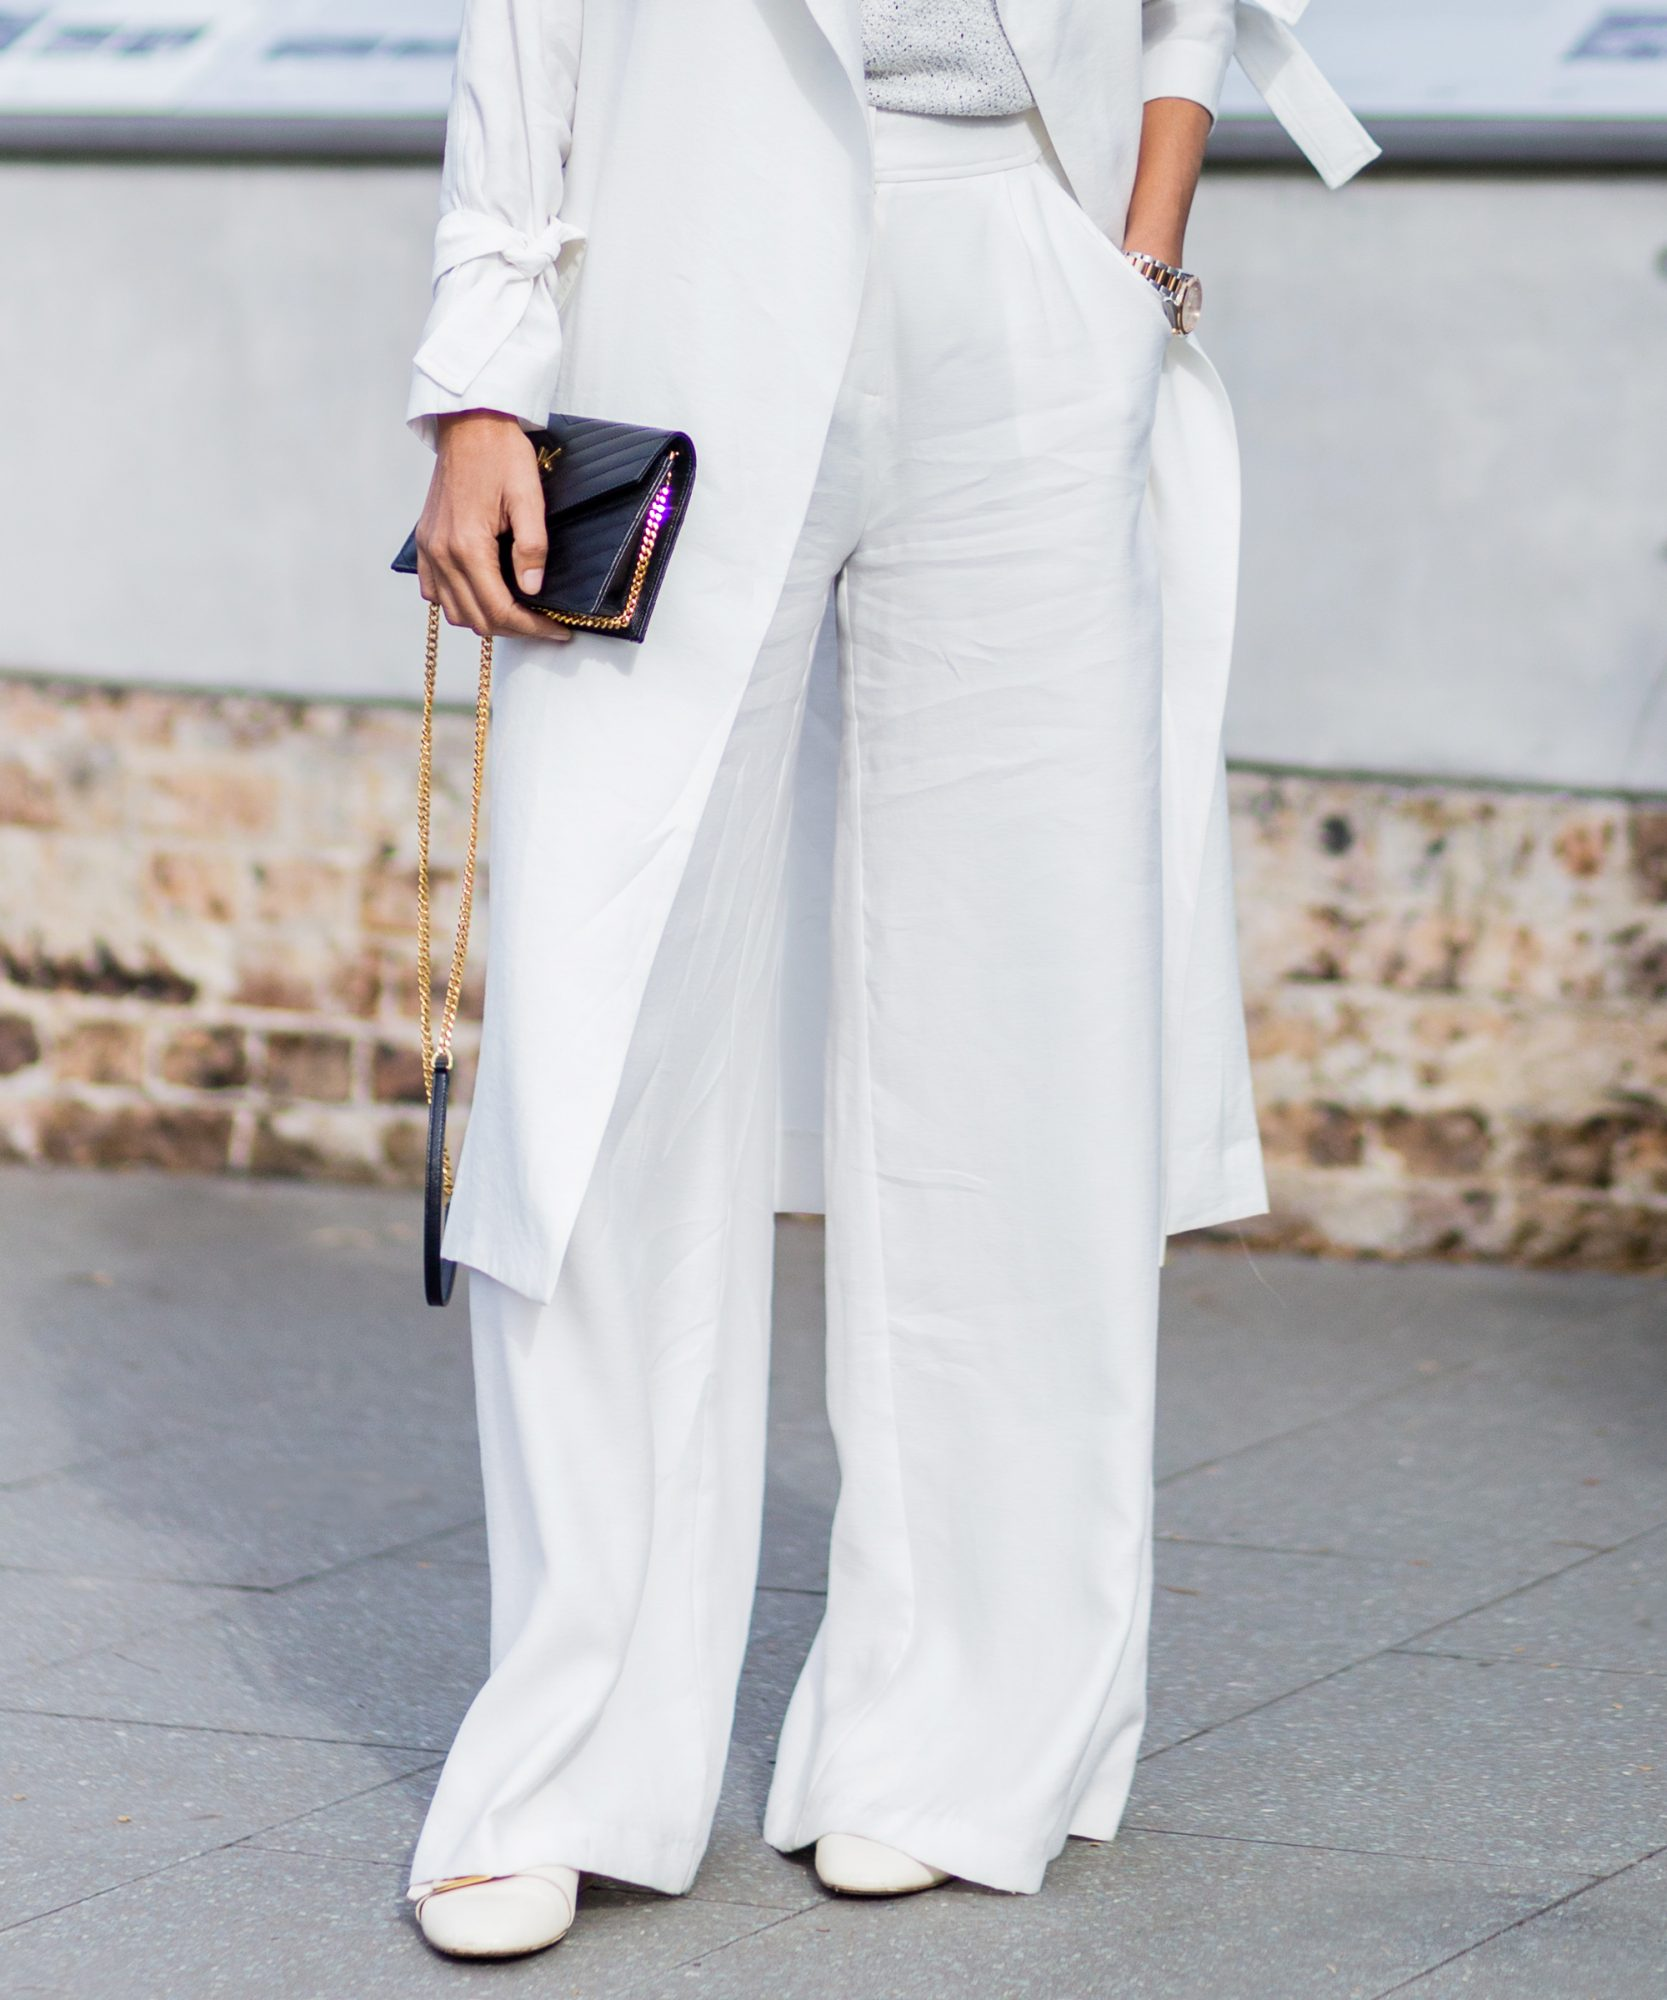 How To Wear Wide Leg Pants With Flats 0qD9Khni